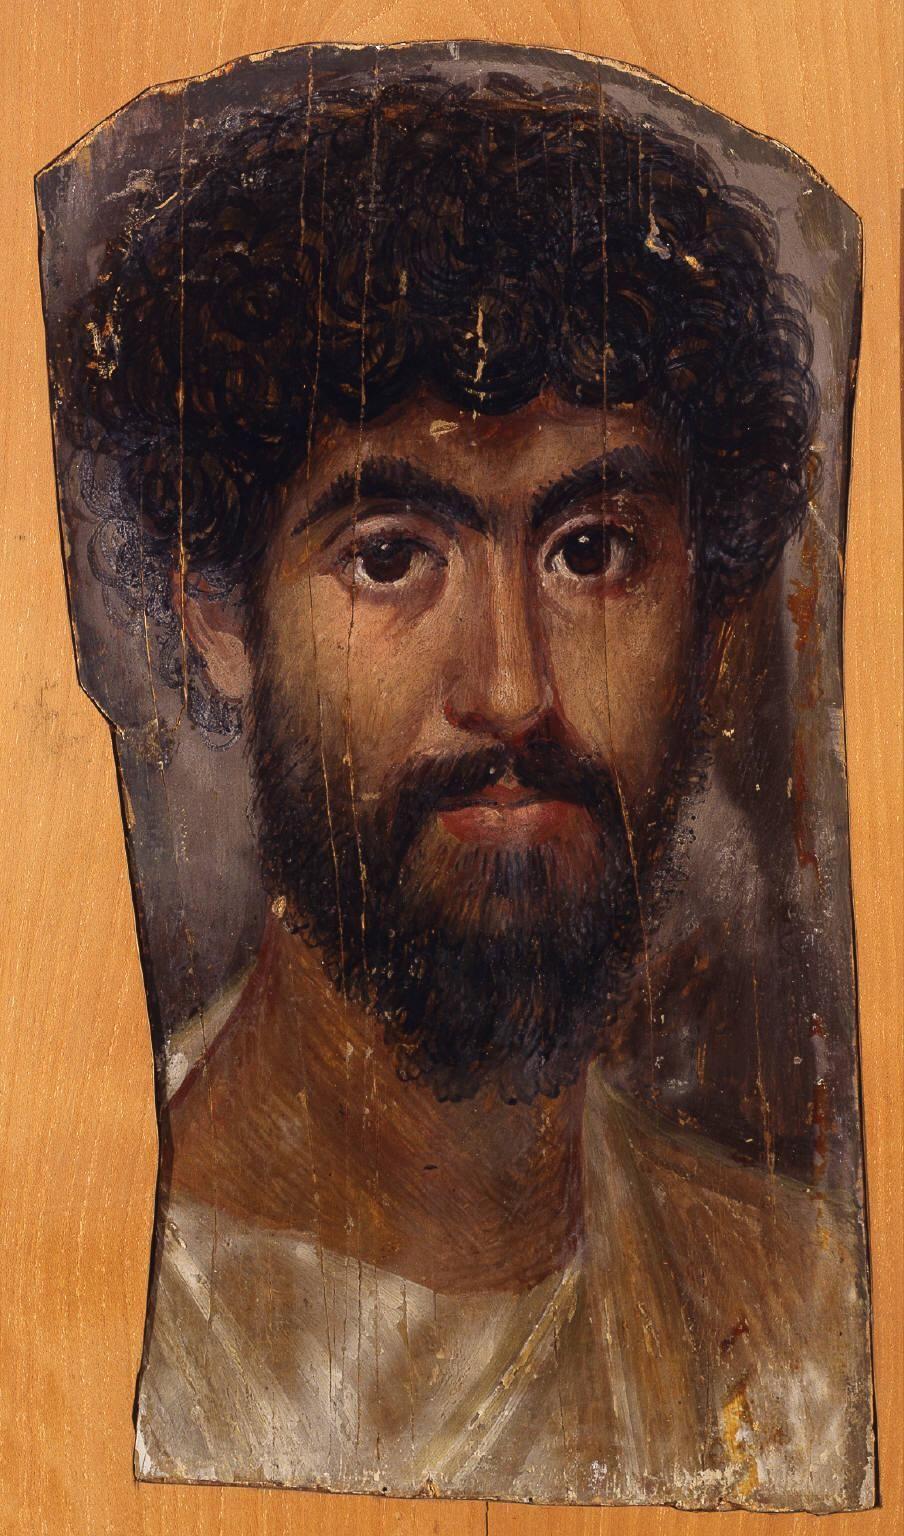 an analysis of the mummy portrait of a man from fayum region in egypt (egypt) fayum mummy portrait of a man, roman egypt  ad roman portrait of  man from fayum region, egypt pigment and wax (encaustic) on wood x x cm x x  gift of emily crane chadbourne,  in it there's an essay on the fayum portraits.